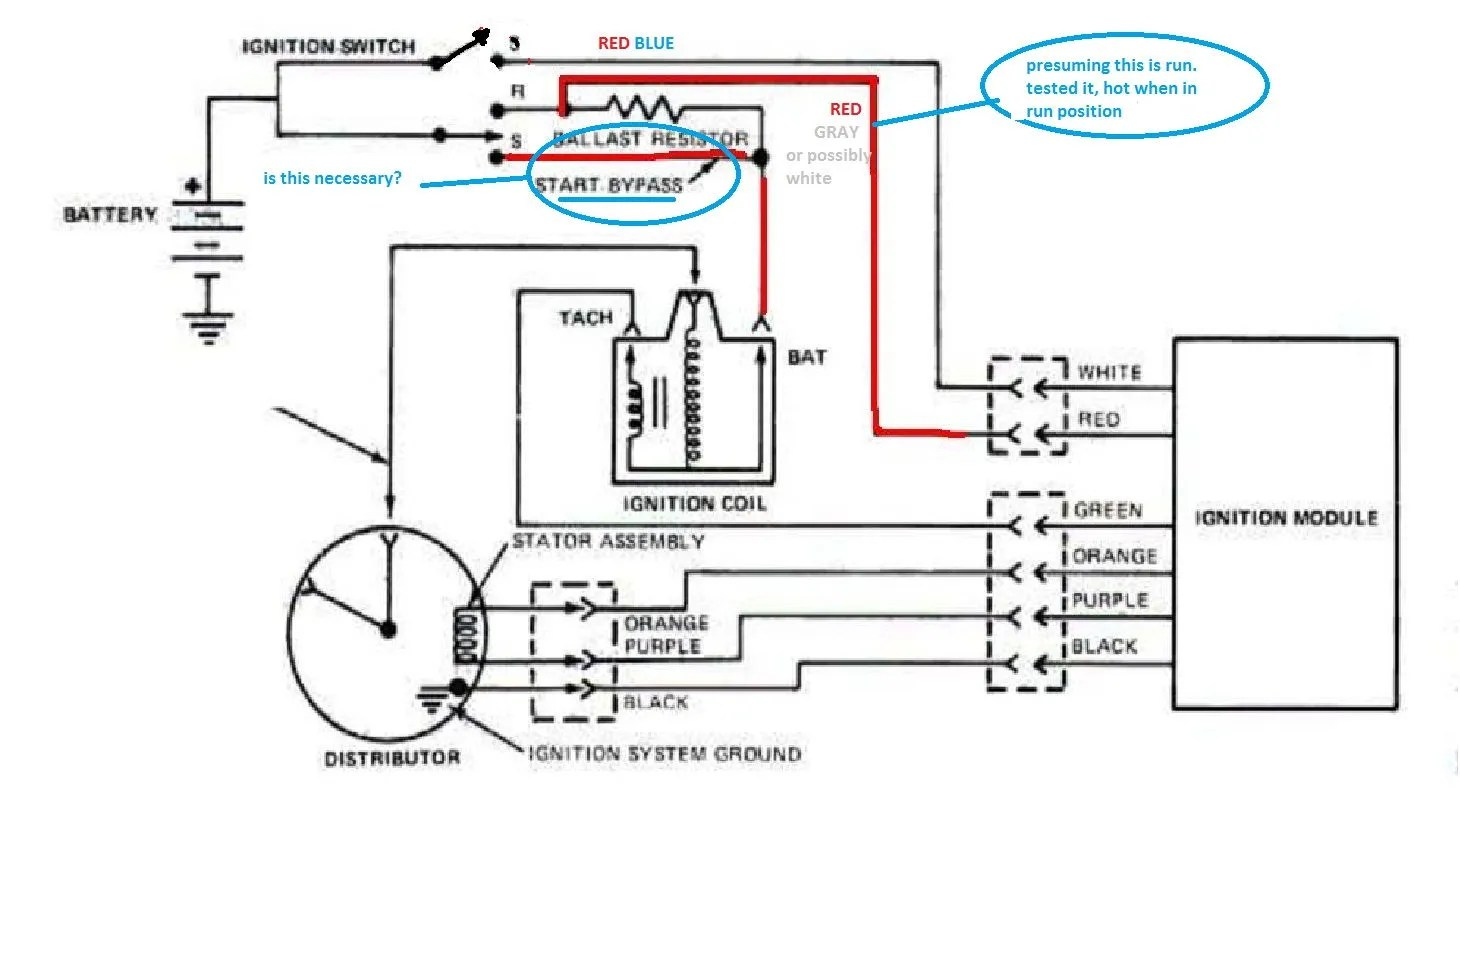 87 ford ignition system wiring diagram wiring diagram view ford 351 ignition wiring [ 1460 x 968 Pixel ]